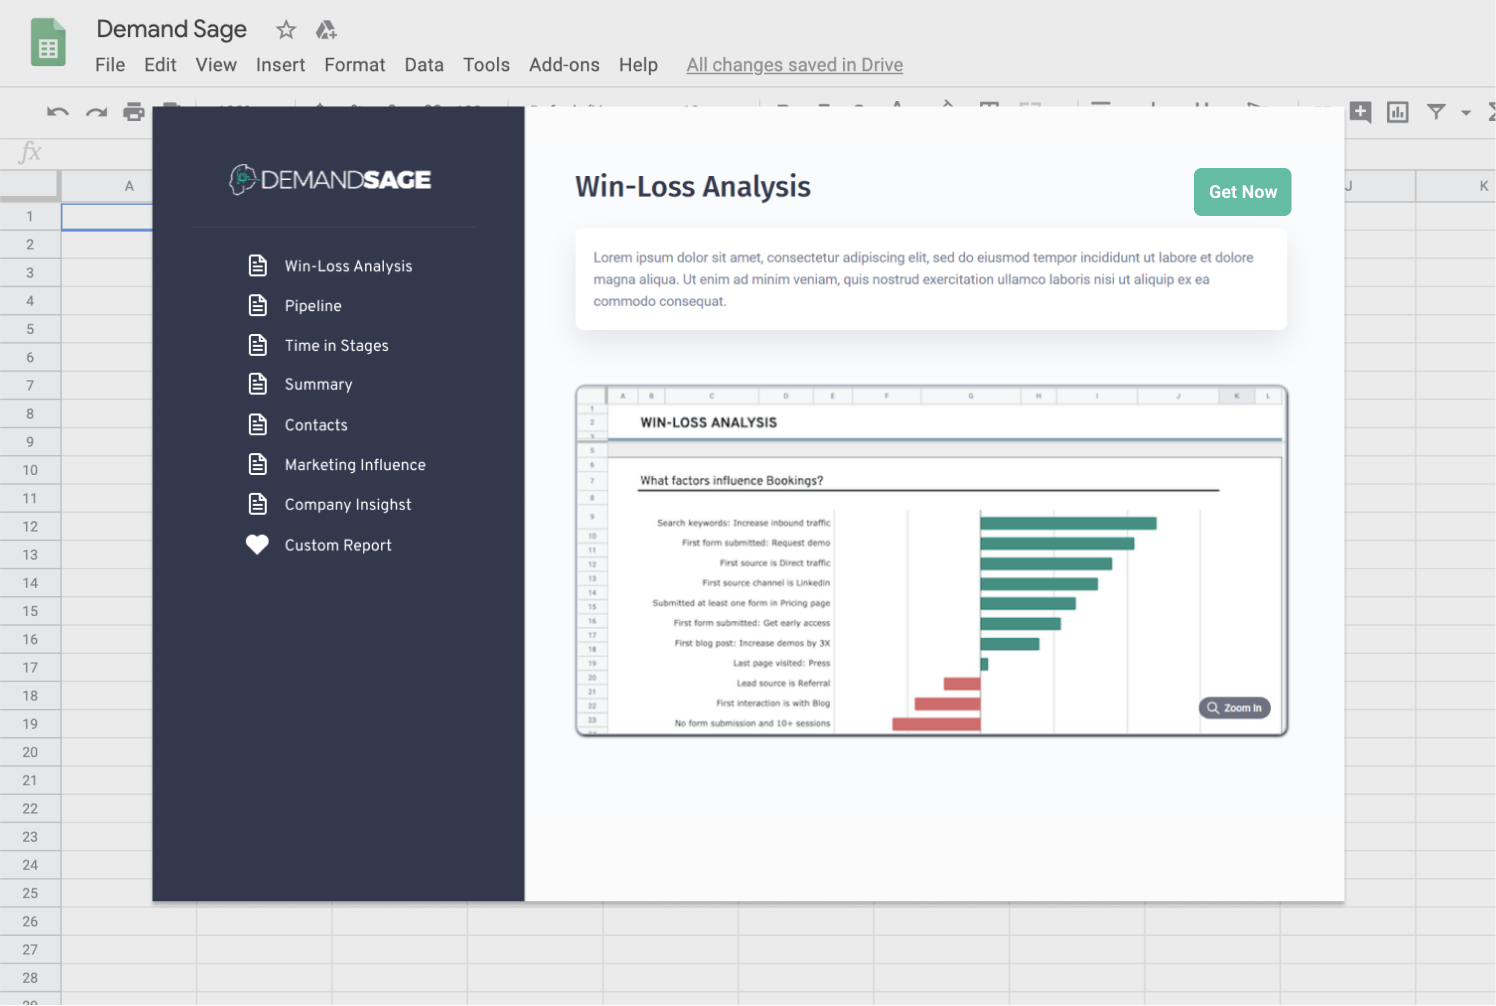 Out of the box reports to empower your HubSpot data with best-practice sales and marketing data insights in Google Sheets, like Account-Based Marketing reports